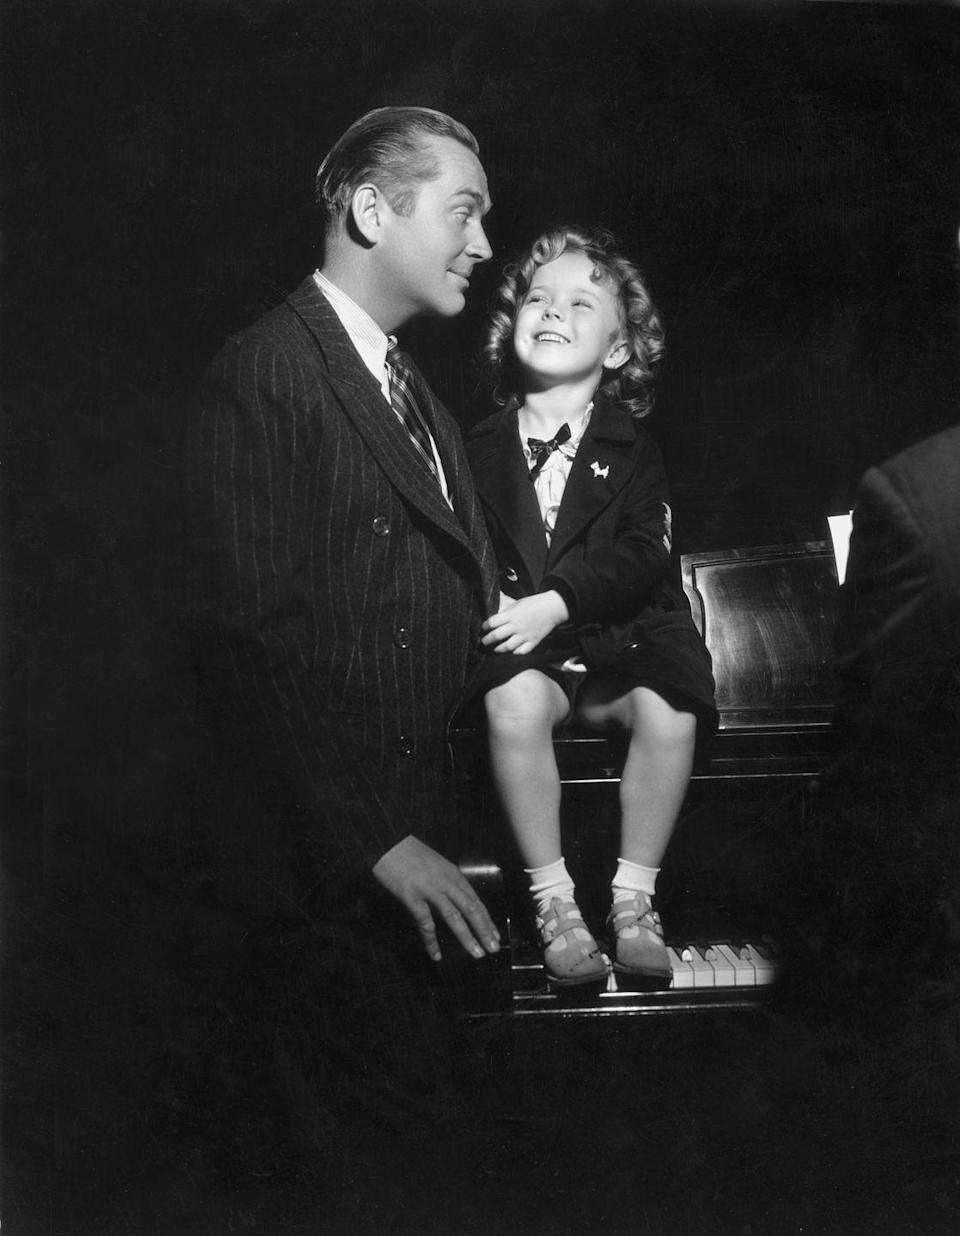 <p>James Dunn and Temple rehearse together for <em>Baby Take a Bow</em>, their fourth film together. </p>